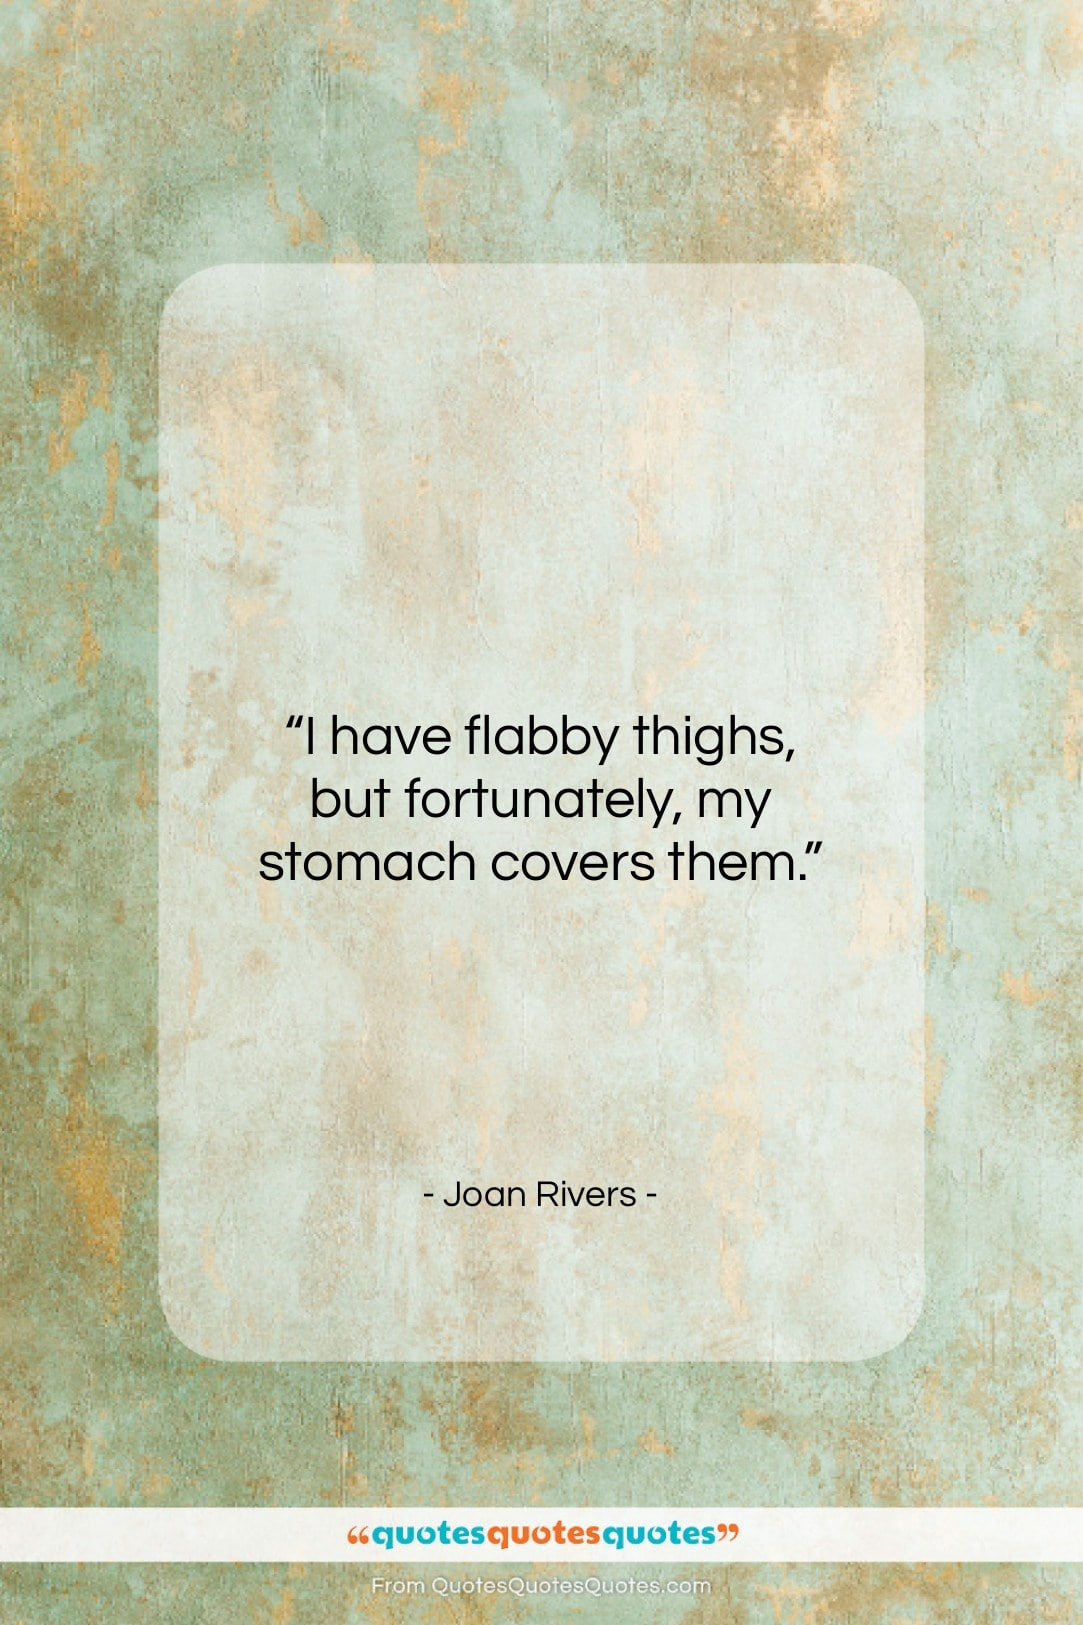 """Joan Rivers quote: """"I have flabby thighs, but fortunately my…""""- at QuotesQuotesQuotes.com"""